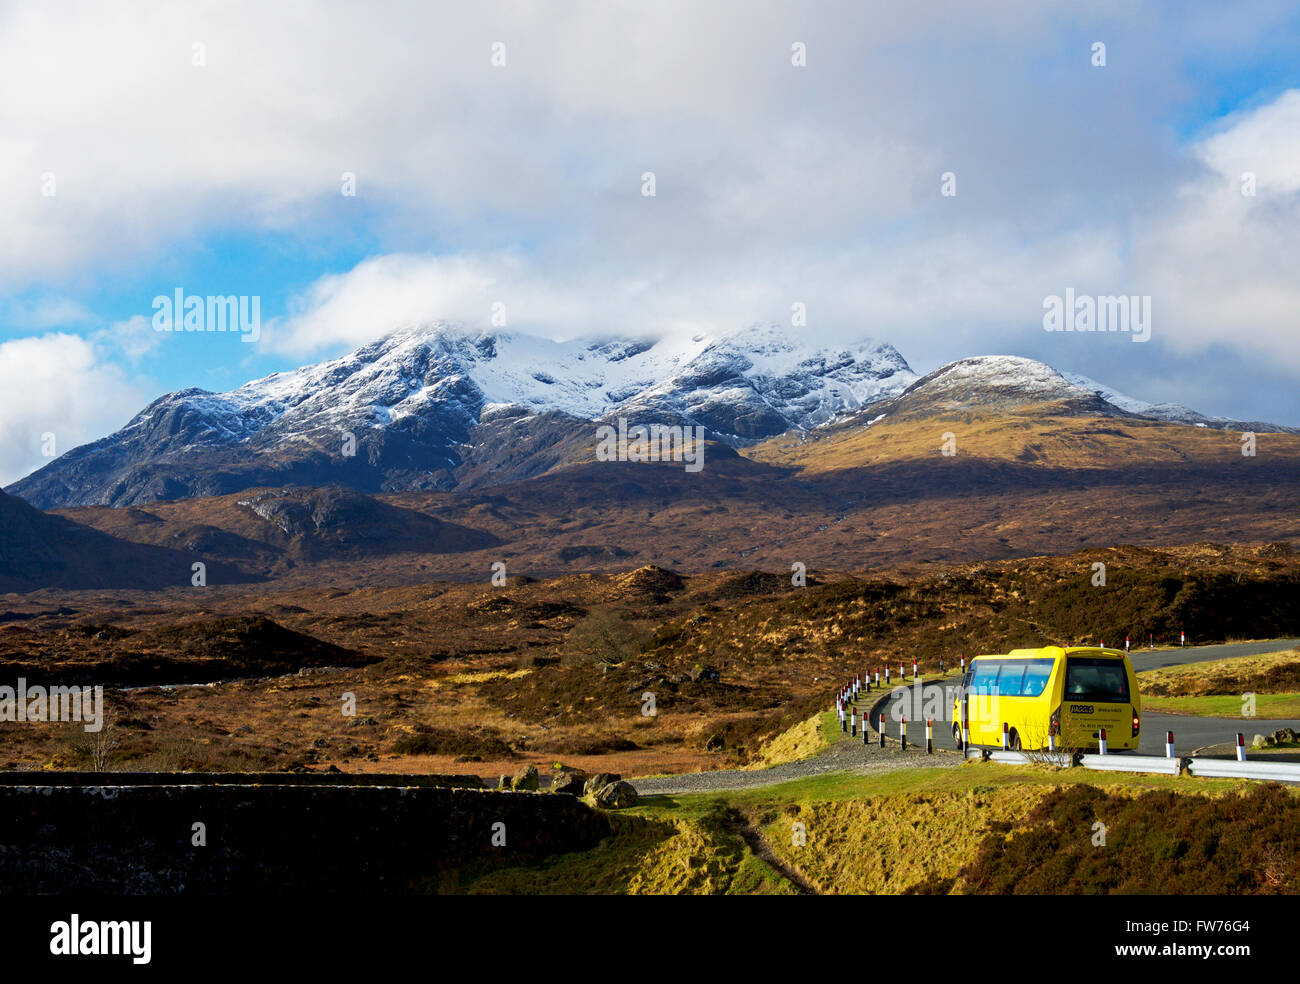 Bus on A863 at Sligachan, with Cuillin mountains in the distance, Isle of Skye, Inner Hebrides, Scotland UK - Stock Image